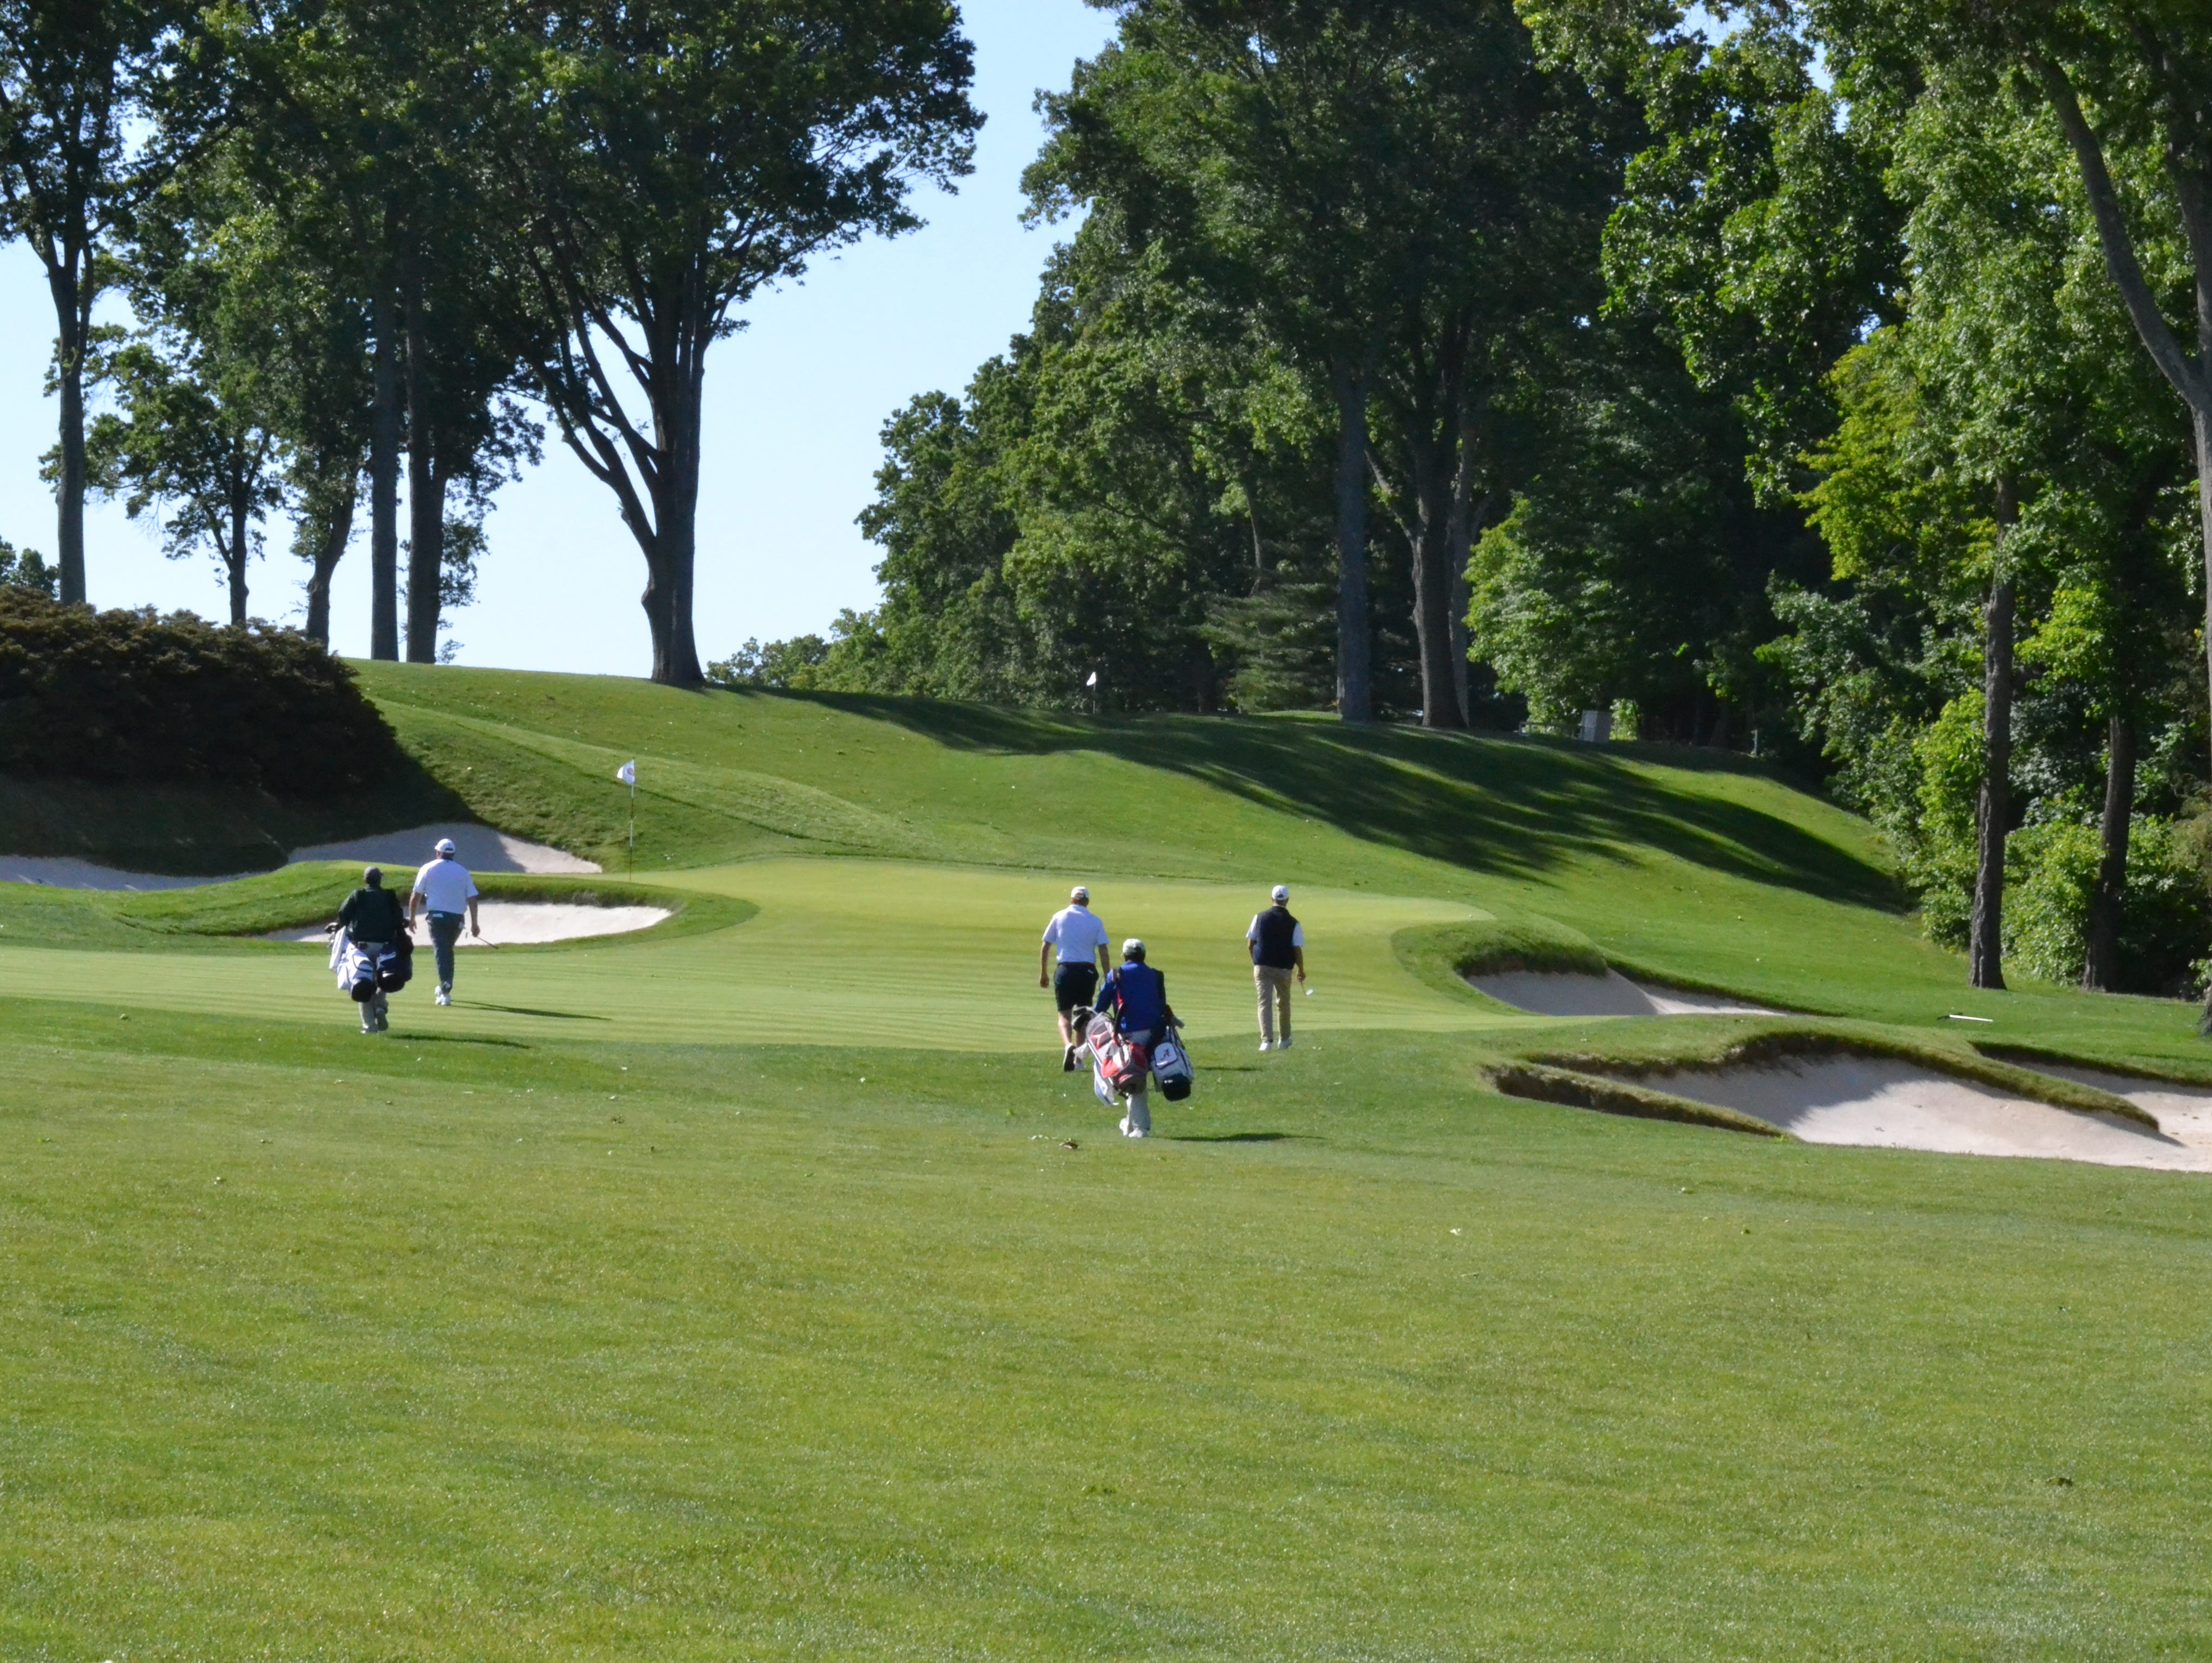 Anderson Memorial semifinal play gets under way at Winged Foot early on Sunday morning.